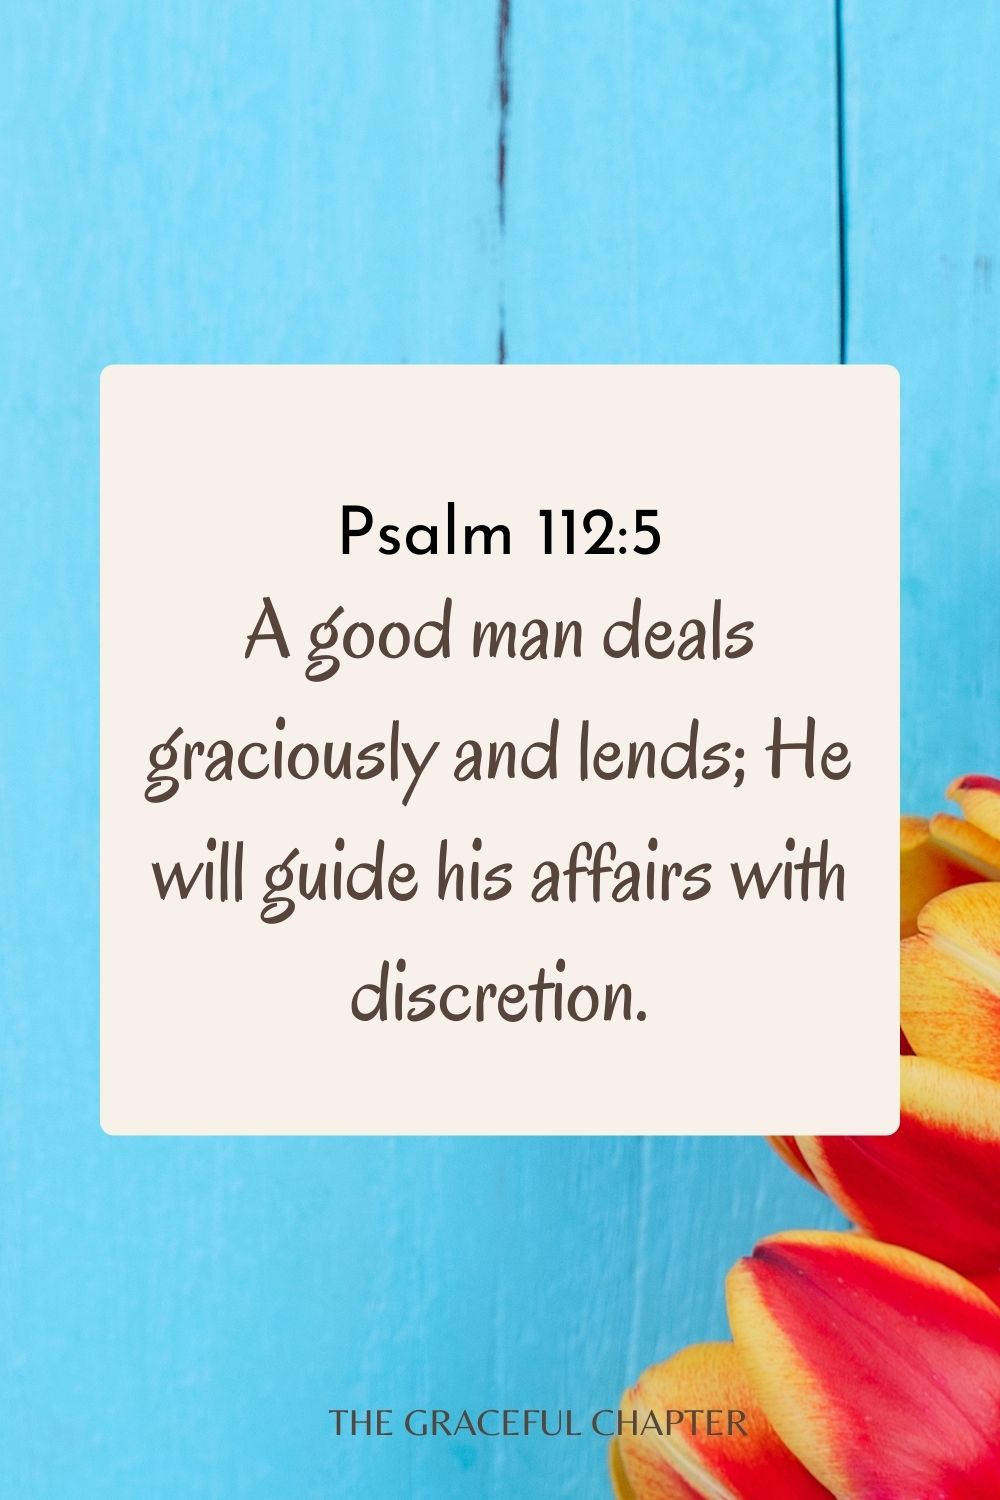 A good man deals graciously and lends; He will guide his affairs with discretion. Psalm 112:5